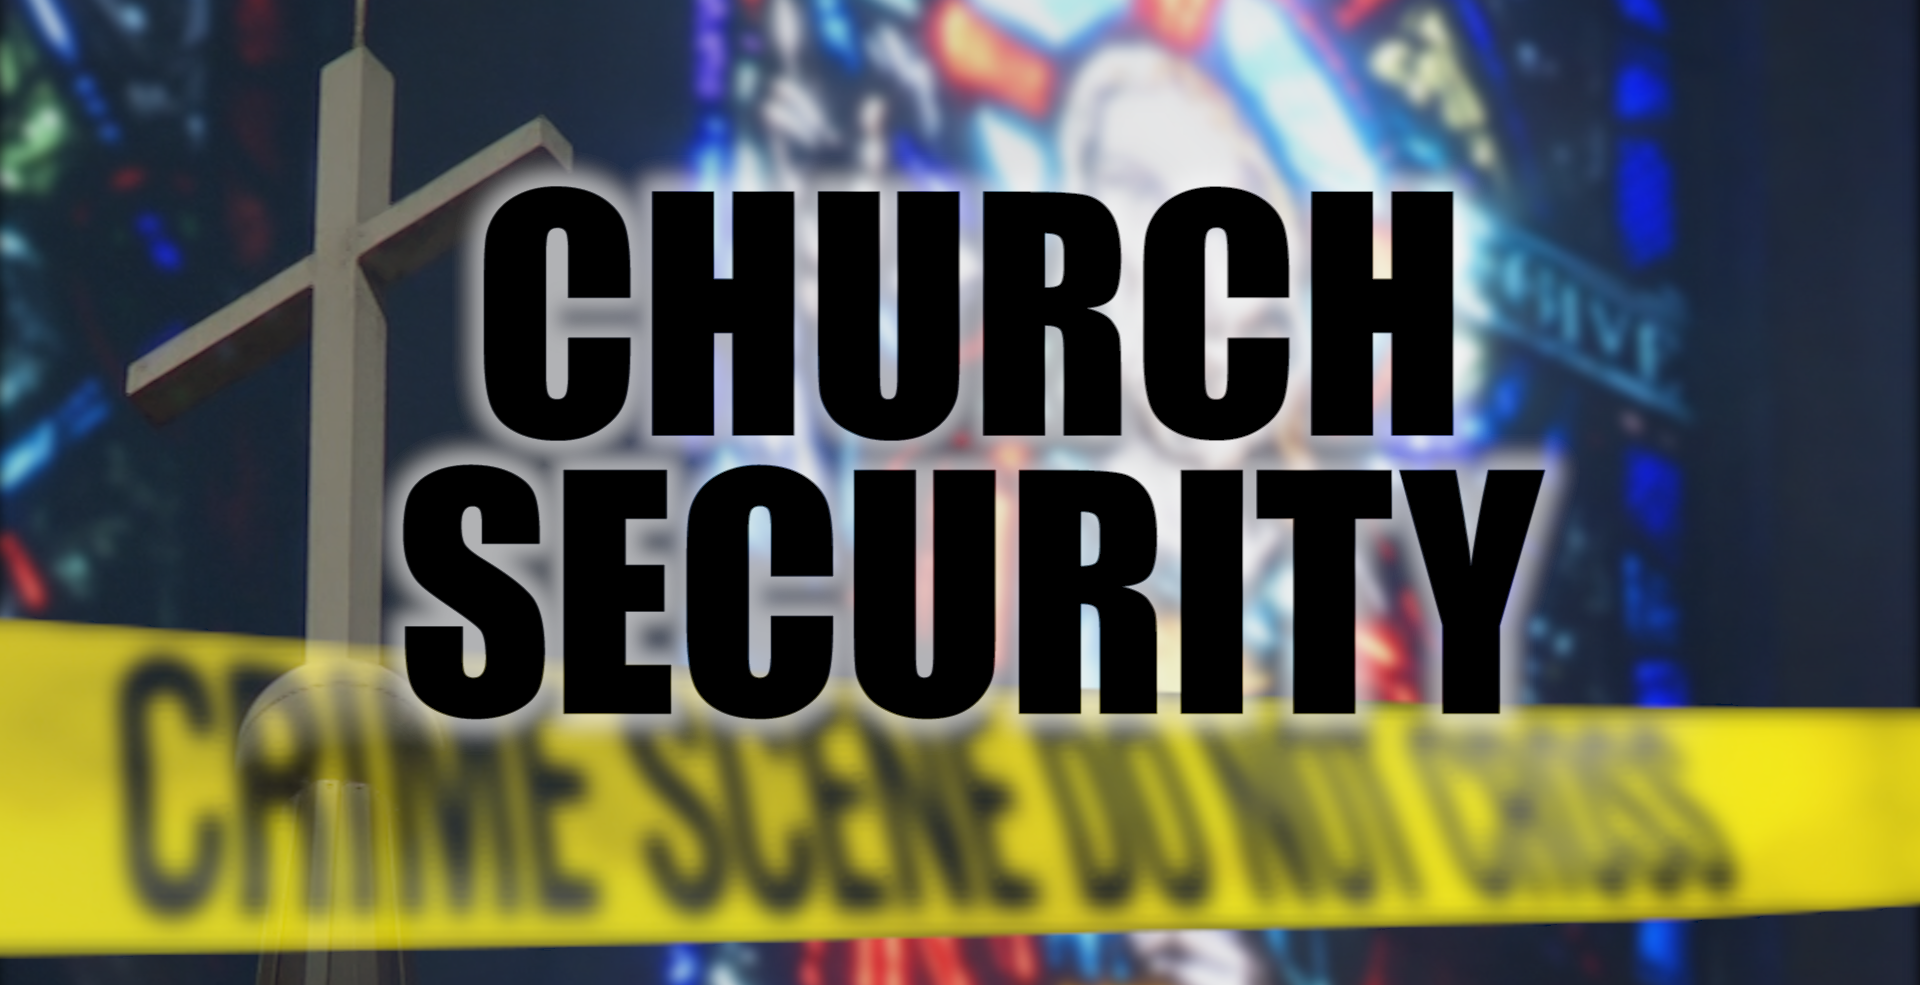 Church Security.png